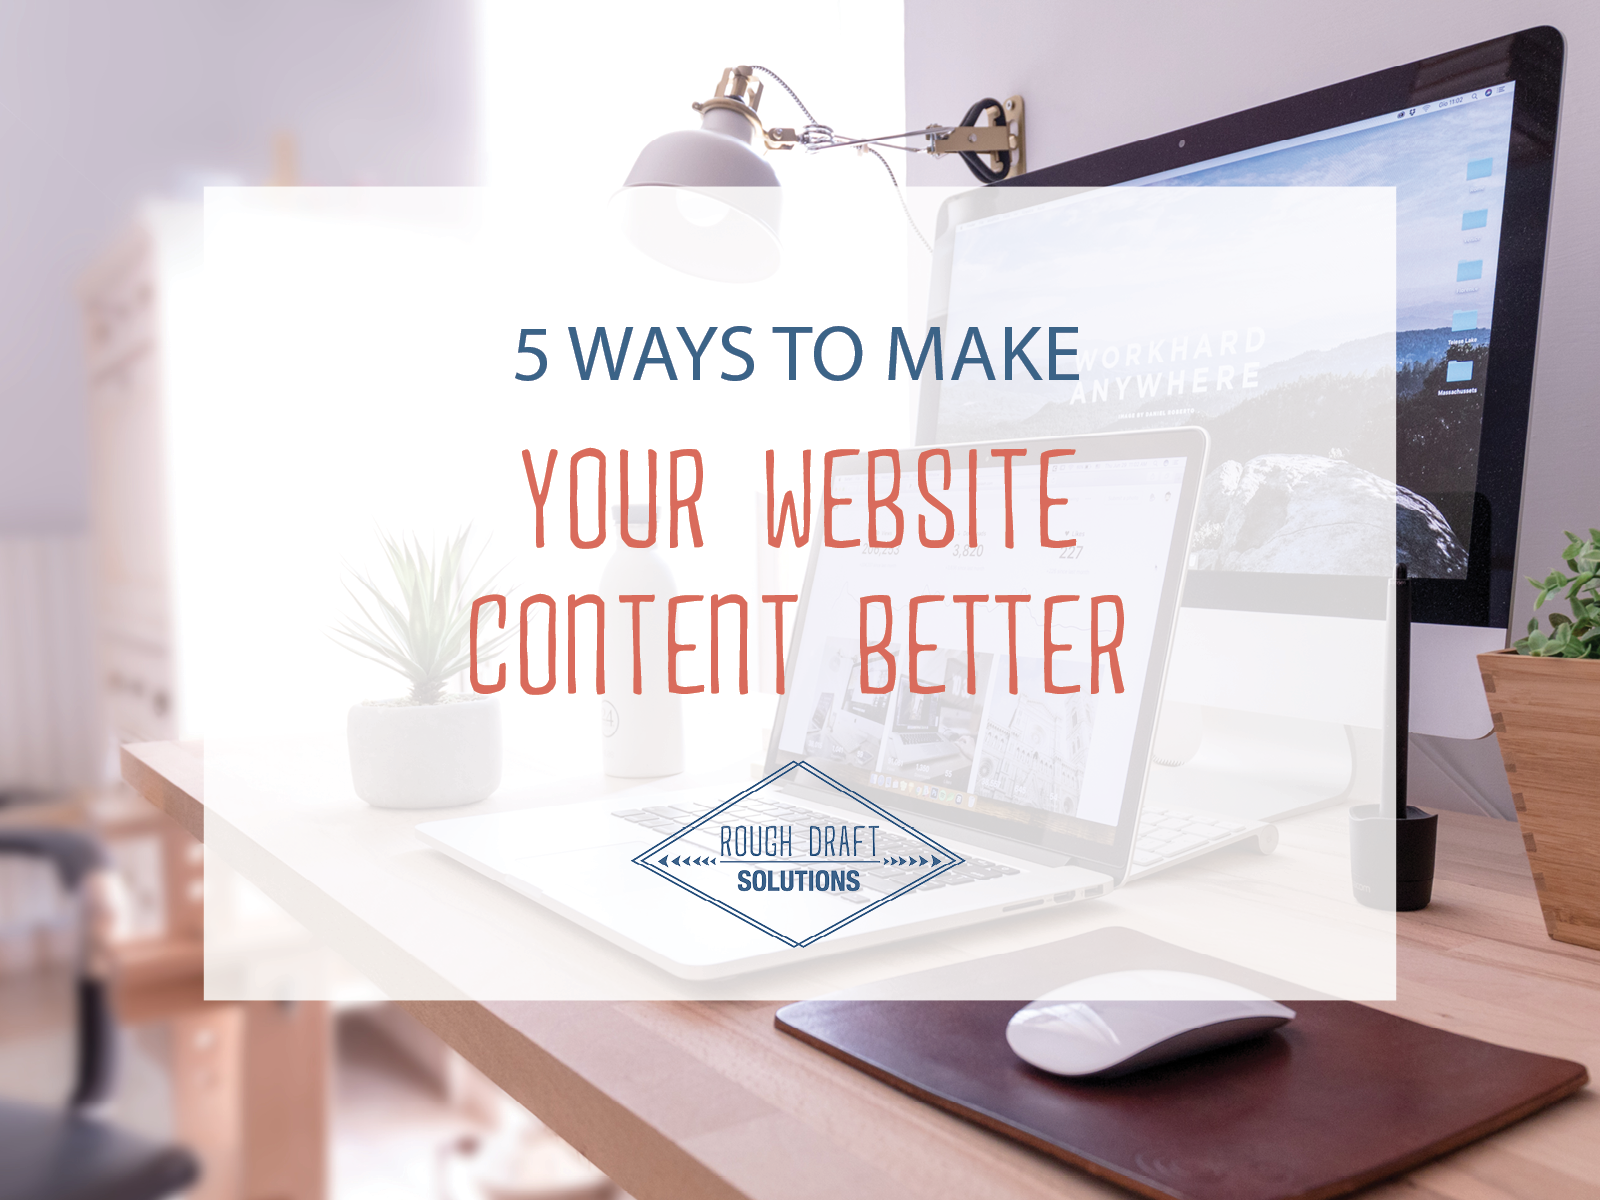 5_Ways_to_Make_Your_Website_Content_Better.png